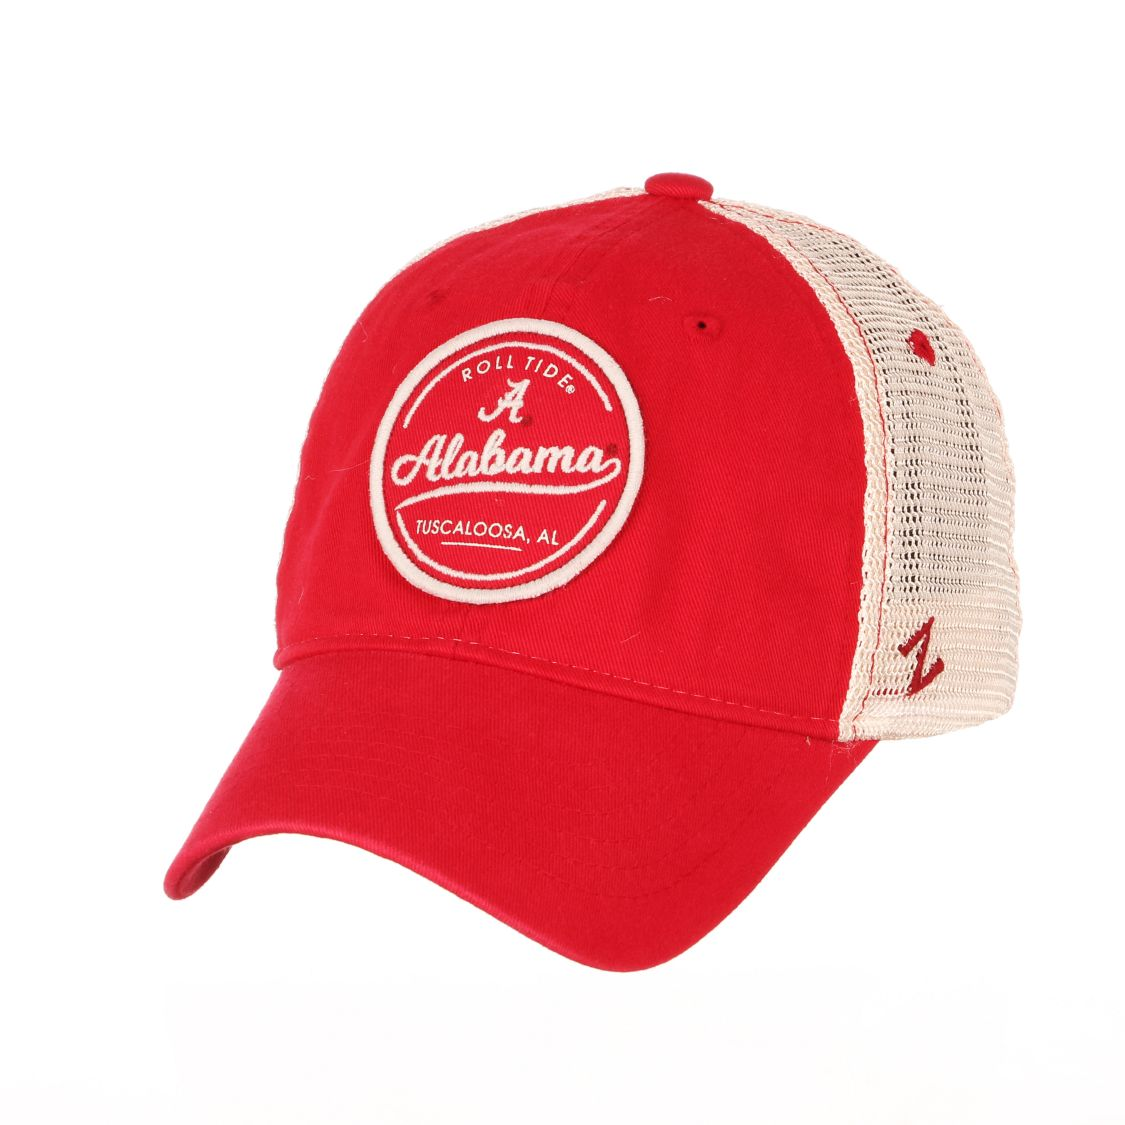 ZHATS Collegiate Slouch Fit Adjustable Baseball Hat